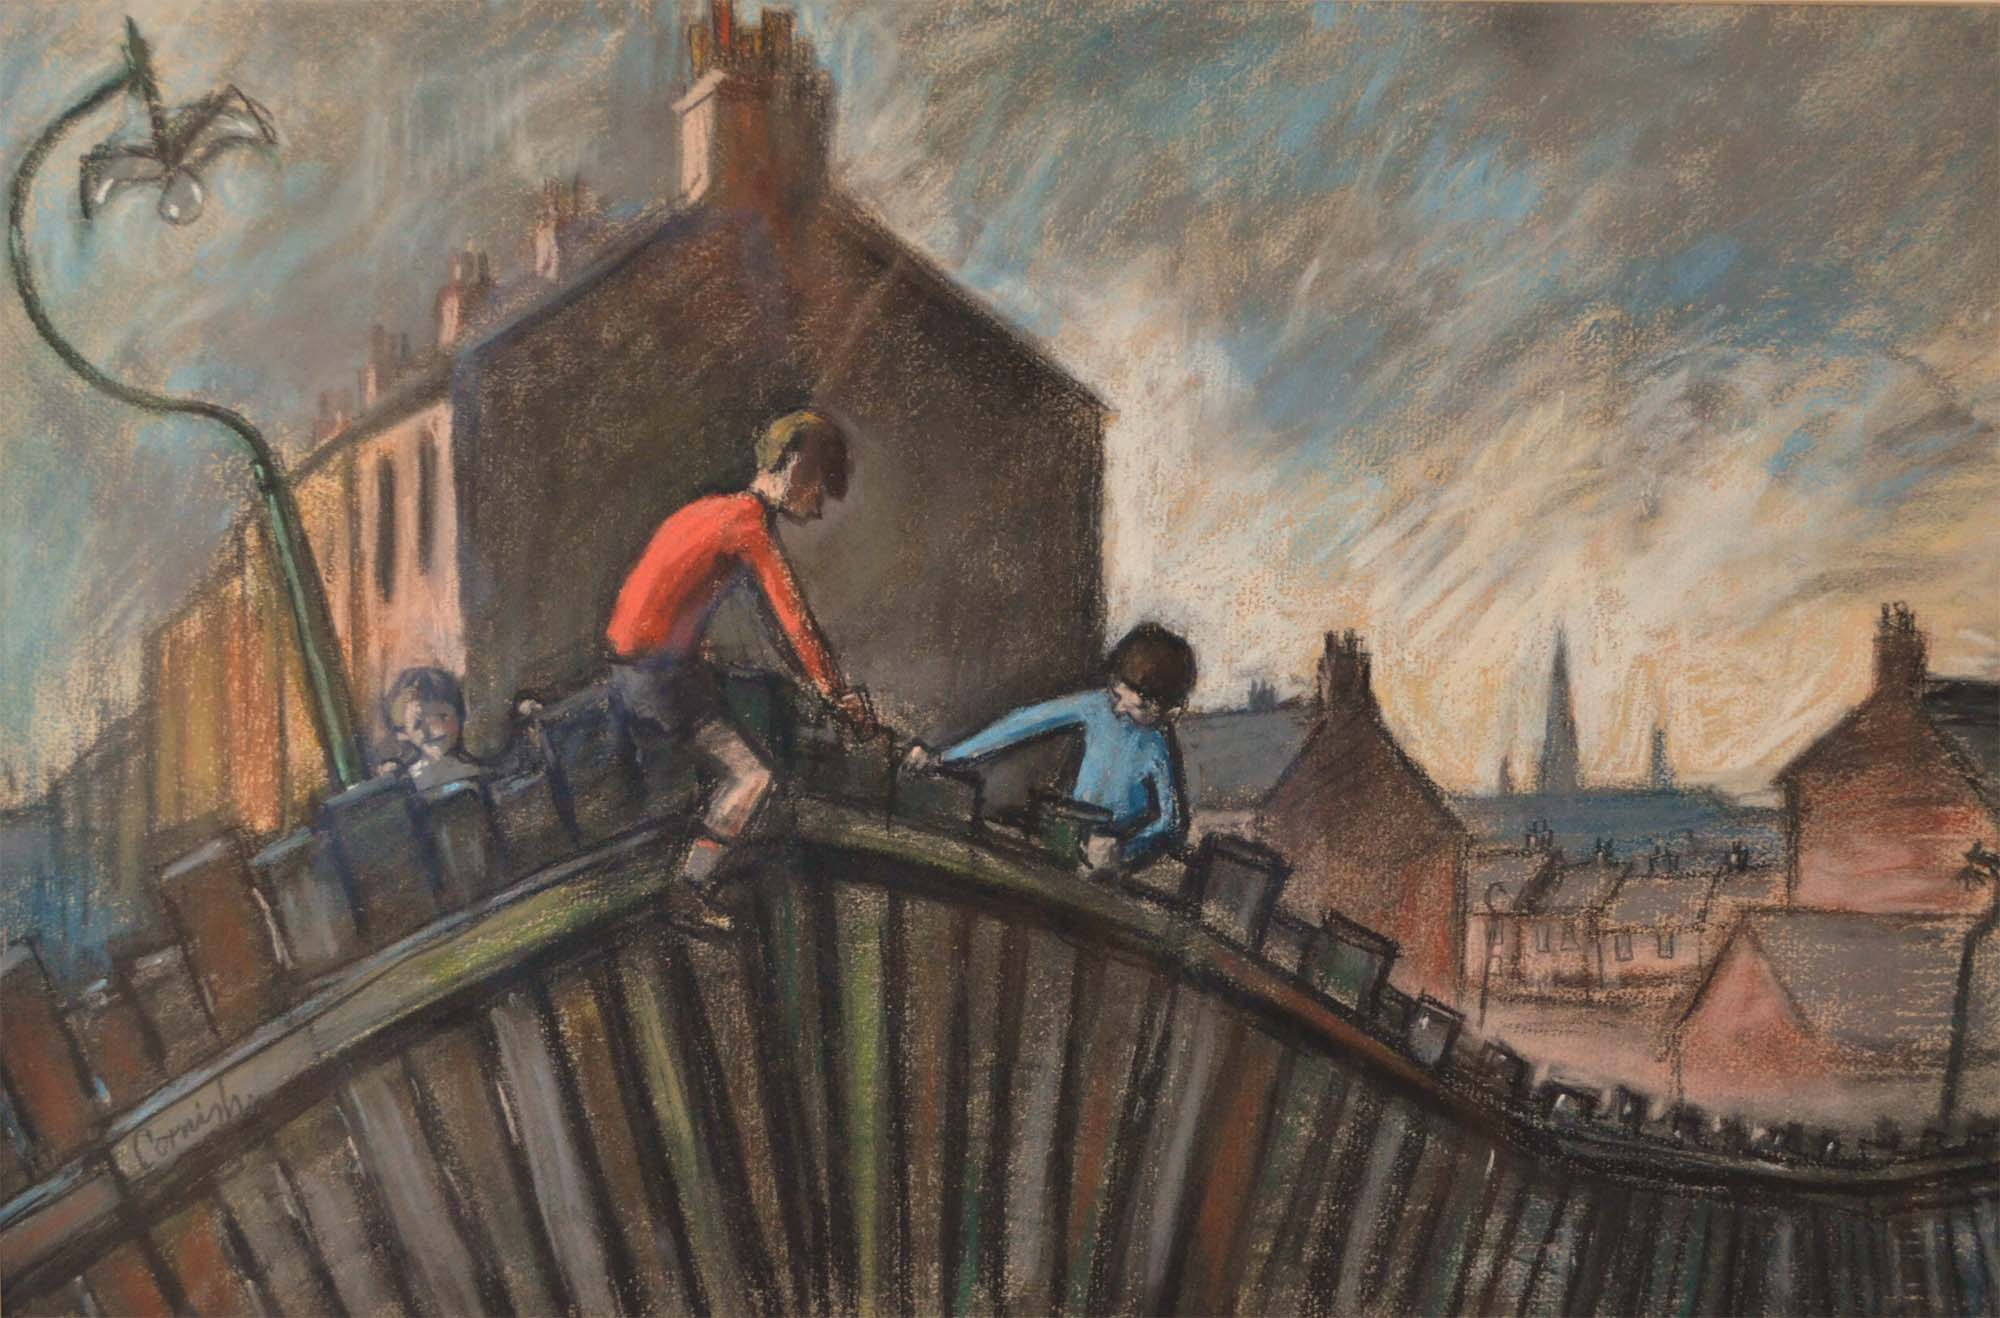 a charcoal sketch of two boys balancing on a fence